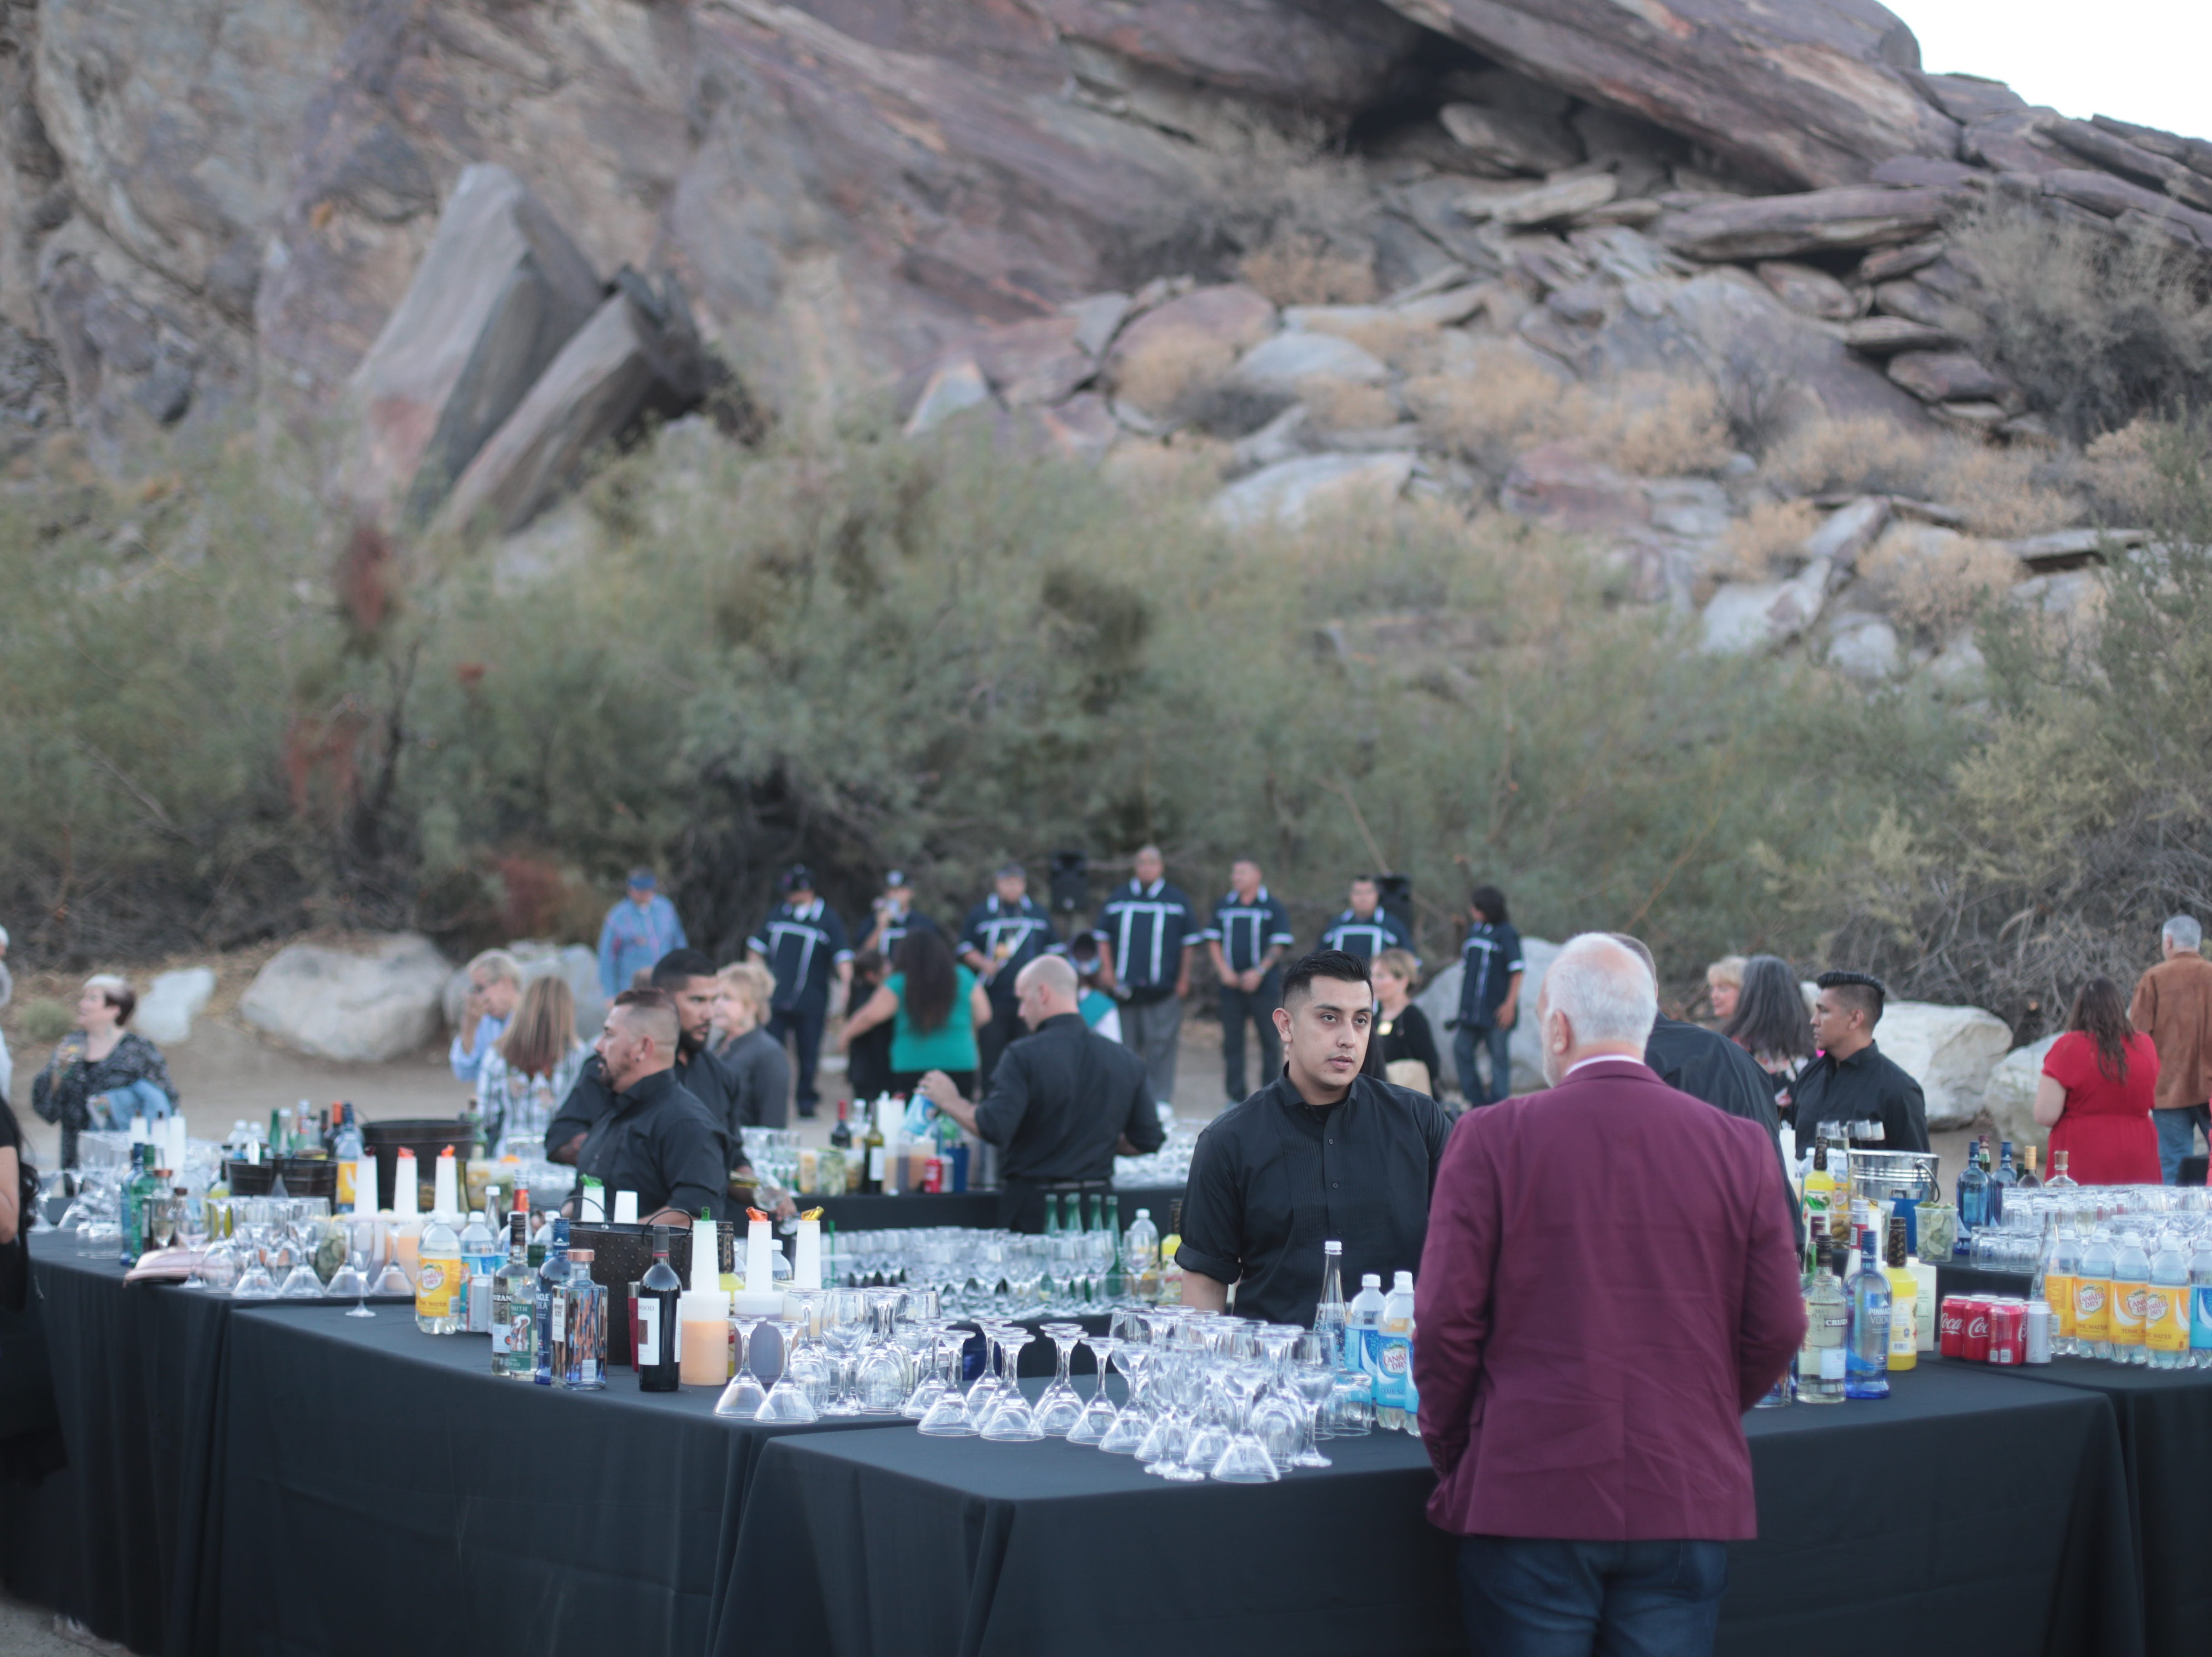 The Agua Caliente Band of Cahuilla Indians host the 2018 Dinner in the Canyons on Saturday, October 6, 2018 in Palm Springs.